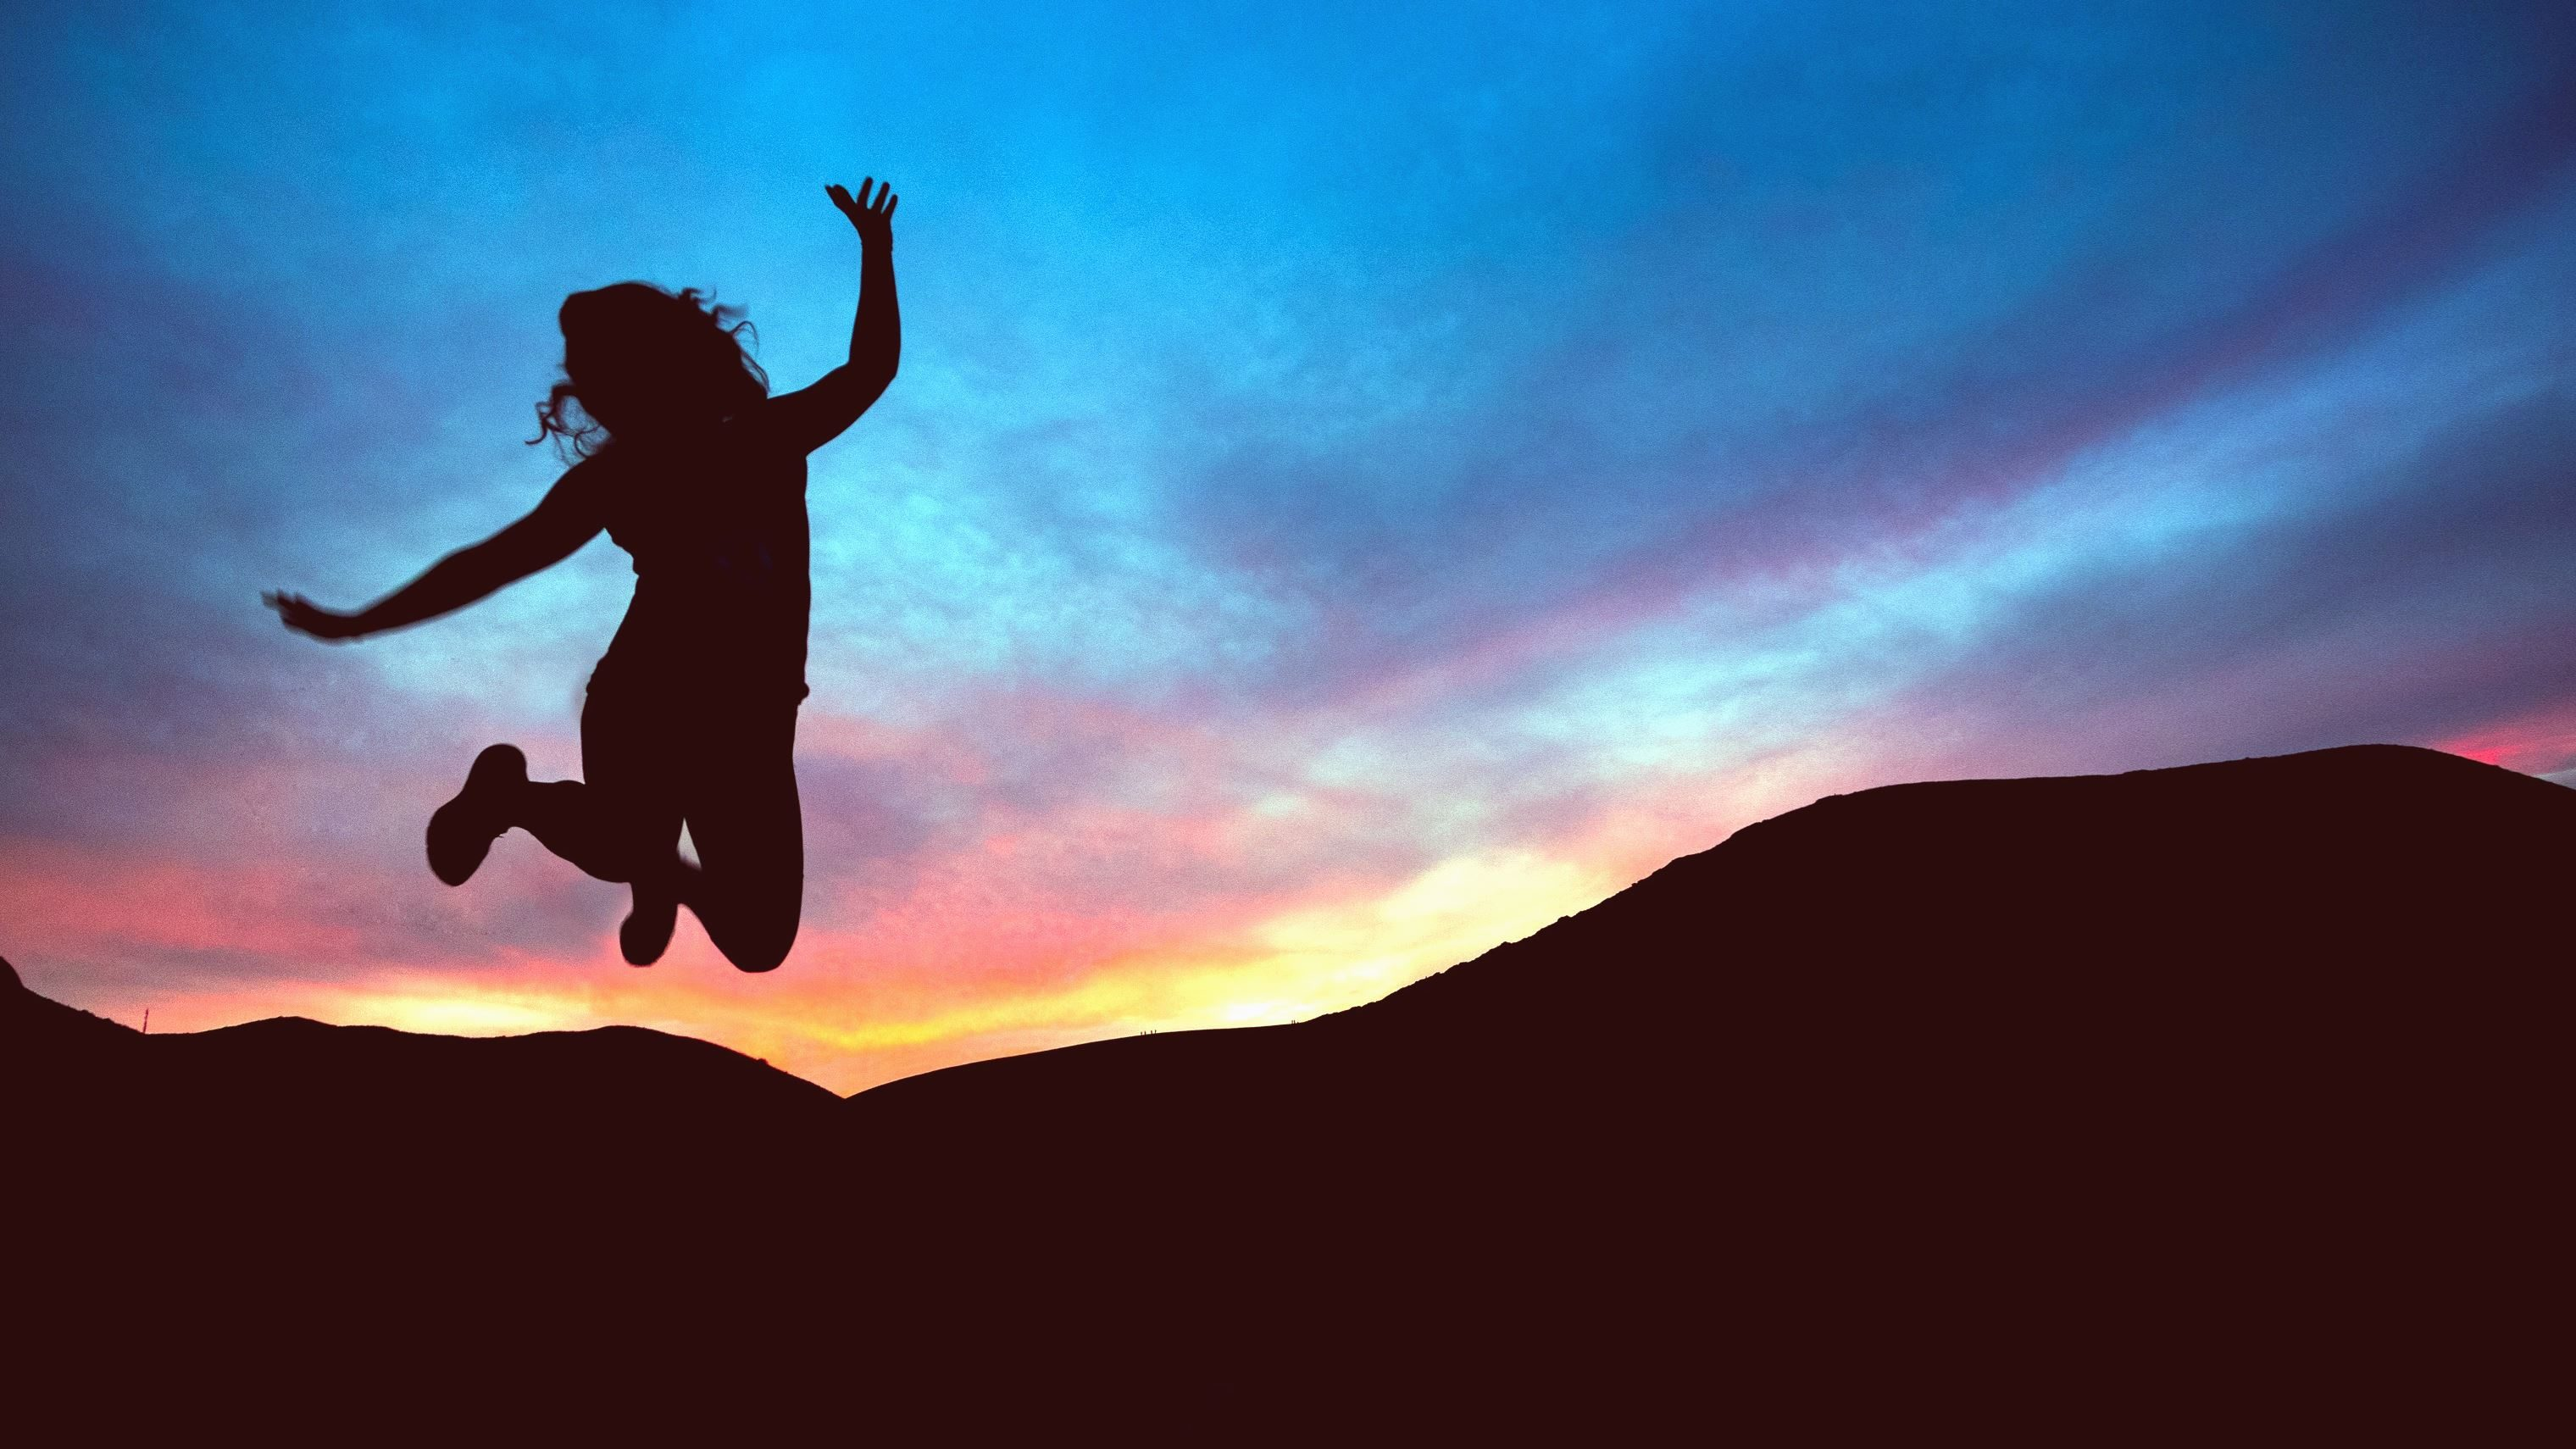 Hd Girl Wallpaper Print Free Picture Girl Silhouette Mountain Jump Sunset